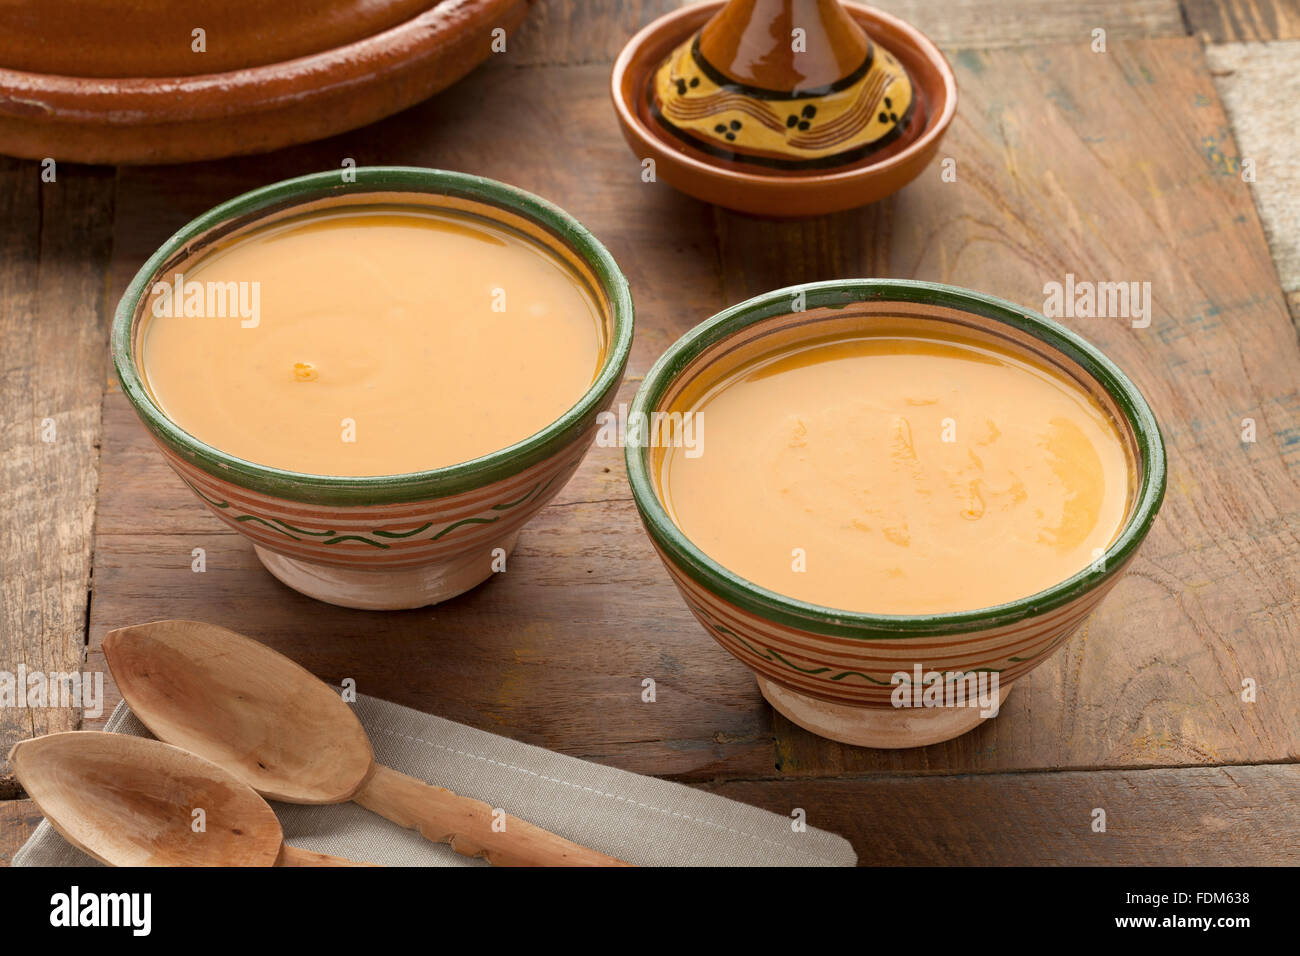 Traditional Moroccan Pumpkin Carrot soup ready to eat - Stock Image